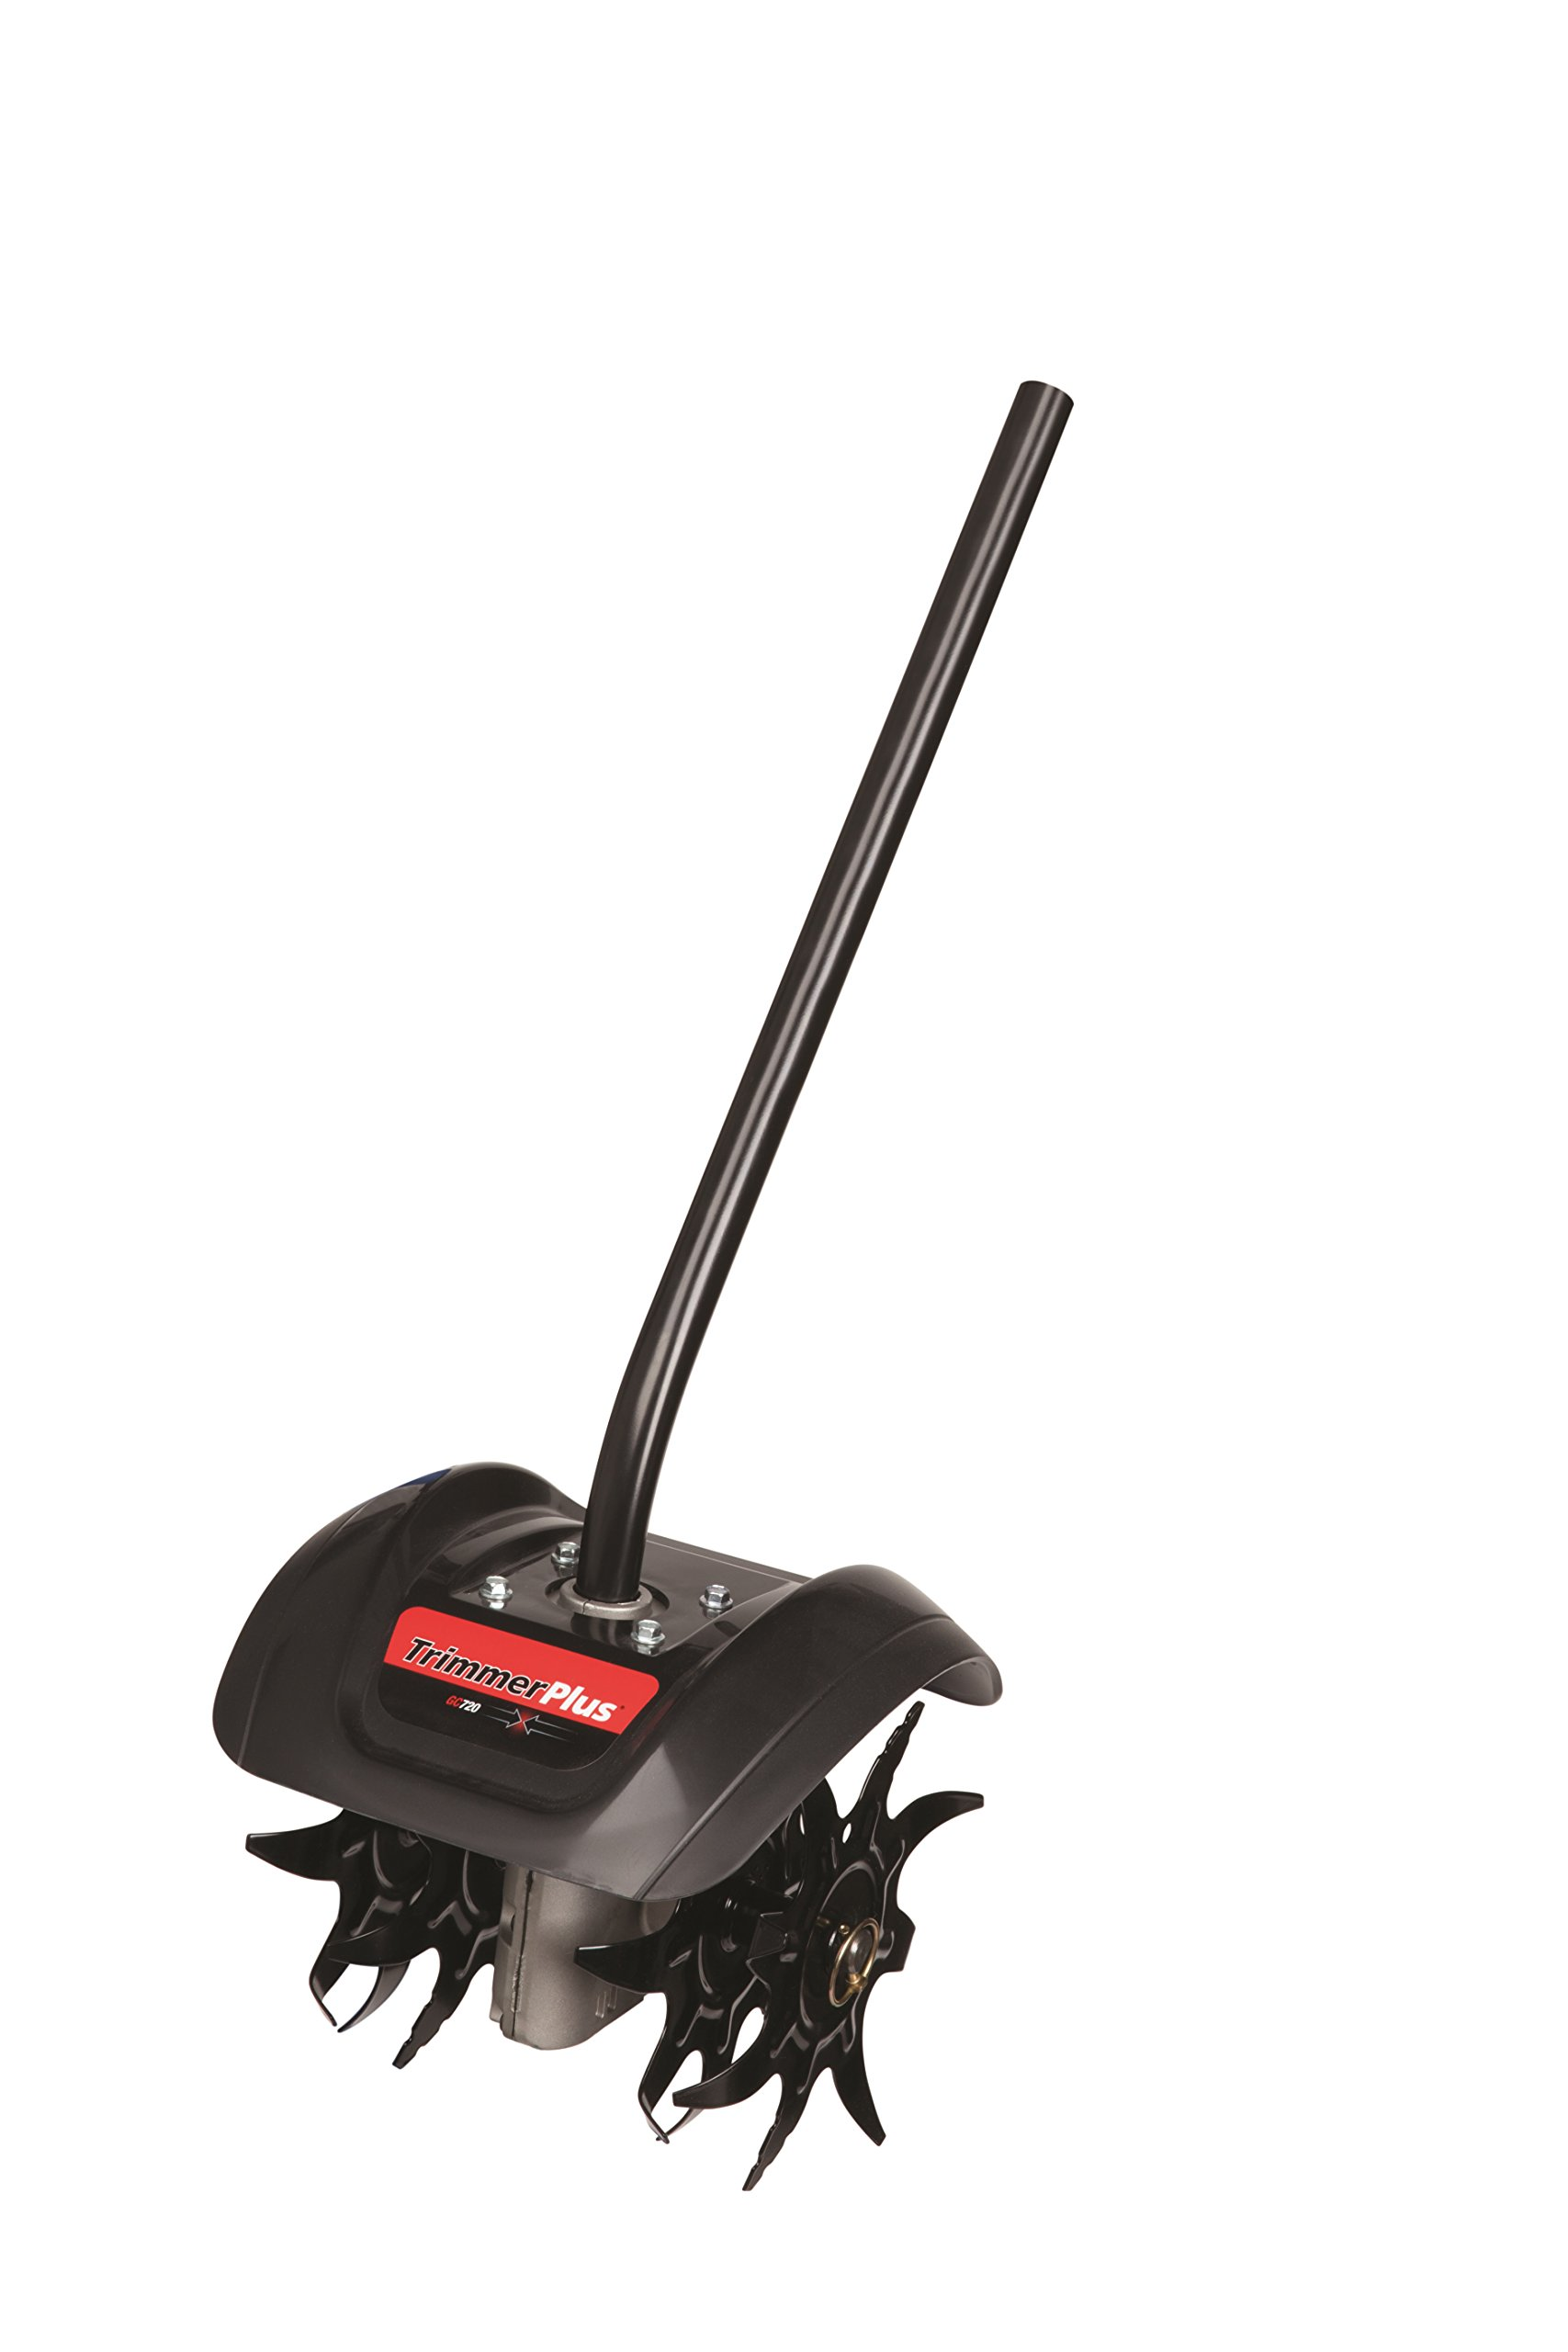 Trimmer Plus GC720 Garden Cultivator with Four Premium Tines